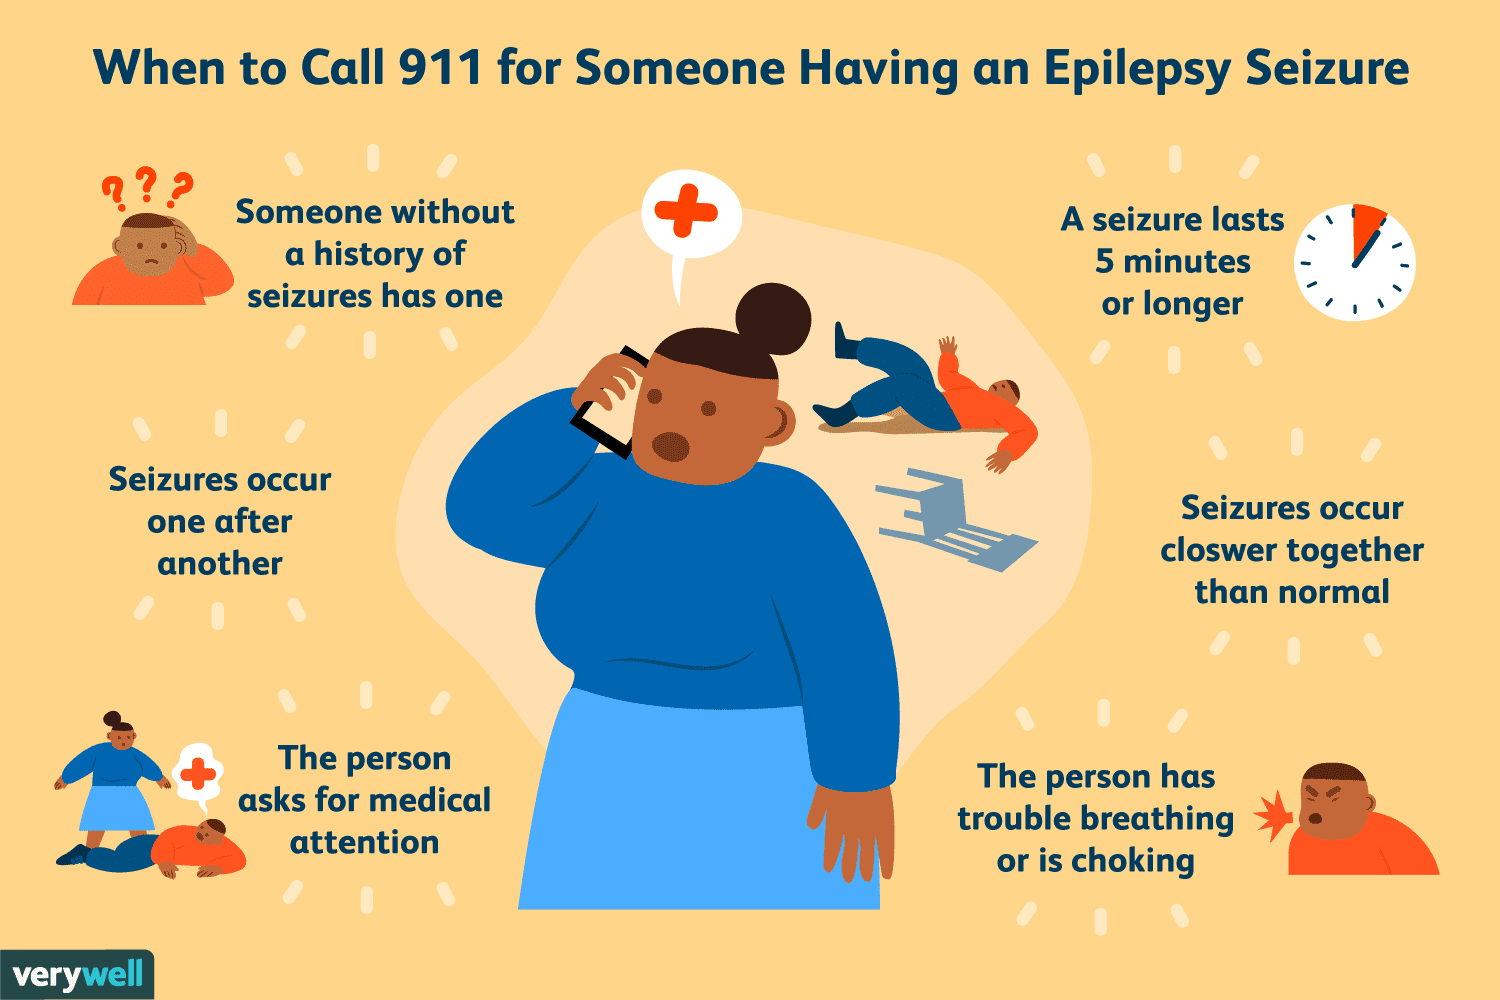 First Aid for Epilepsy Seizures